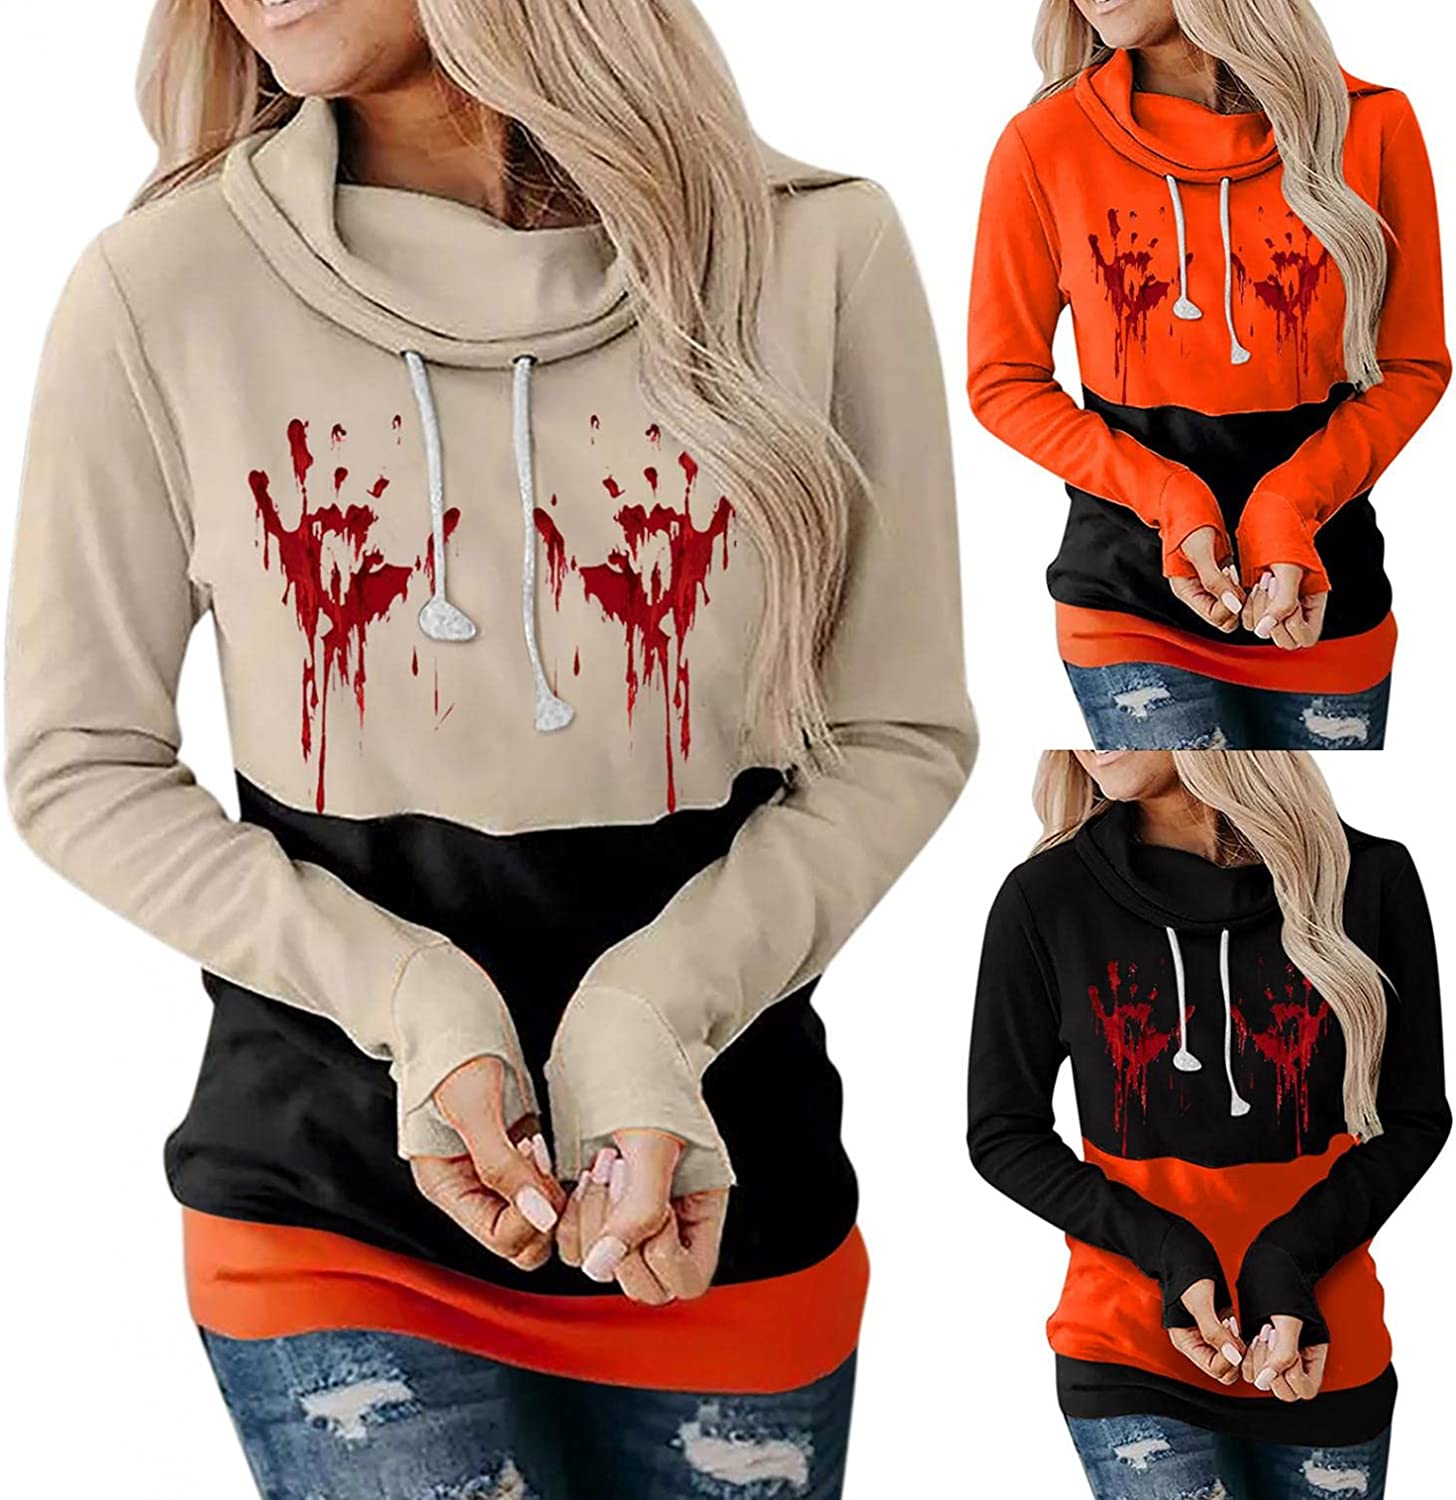 Fudule Halloween Shirts for Women Blood Printed Costumes Casual Lightweight Sweatshirts Color Block Long Sleeve Pullover